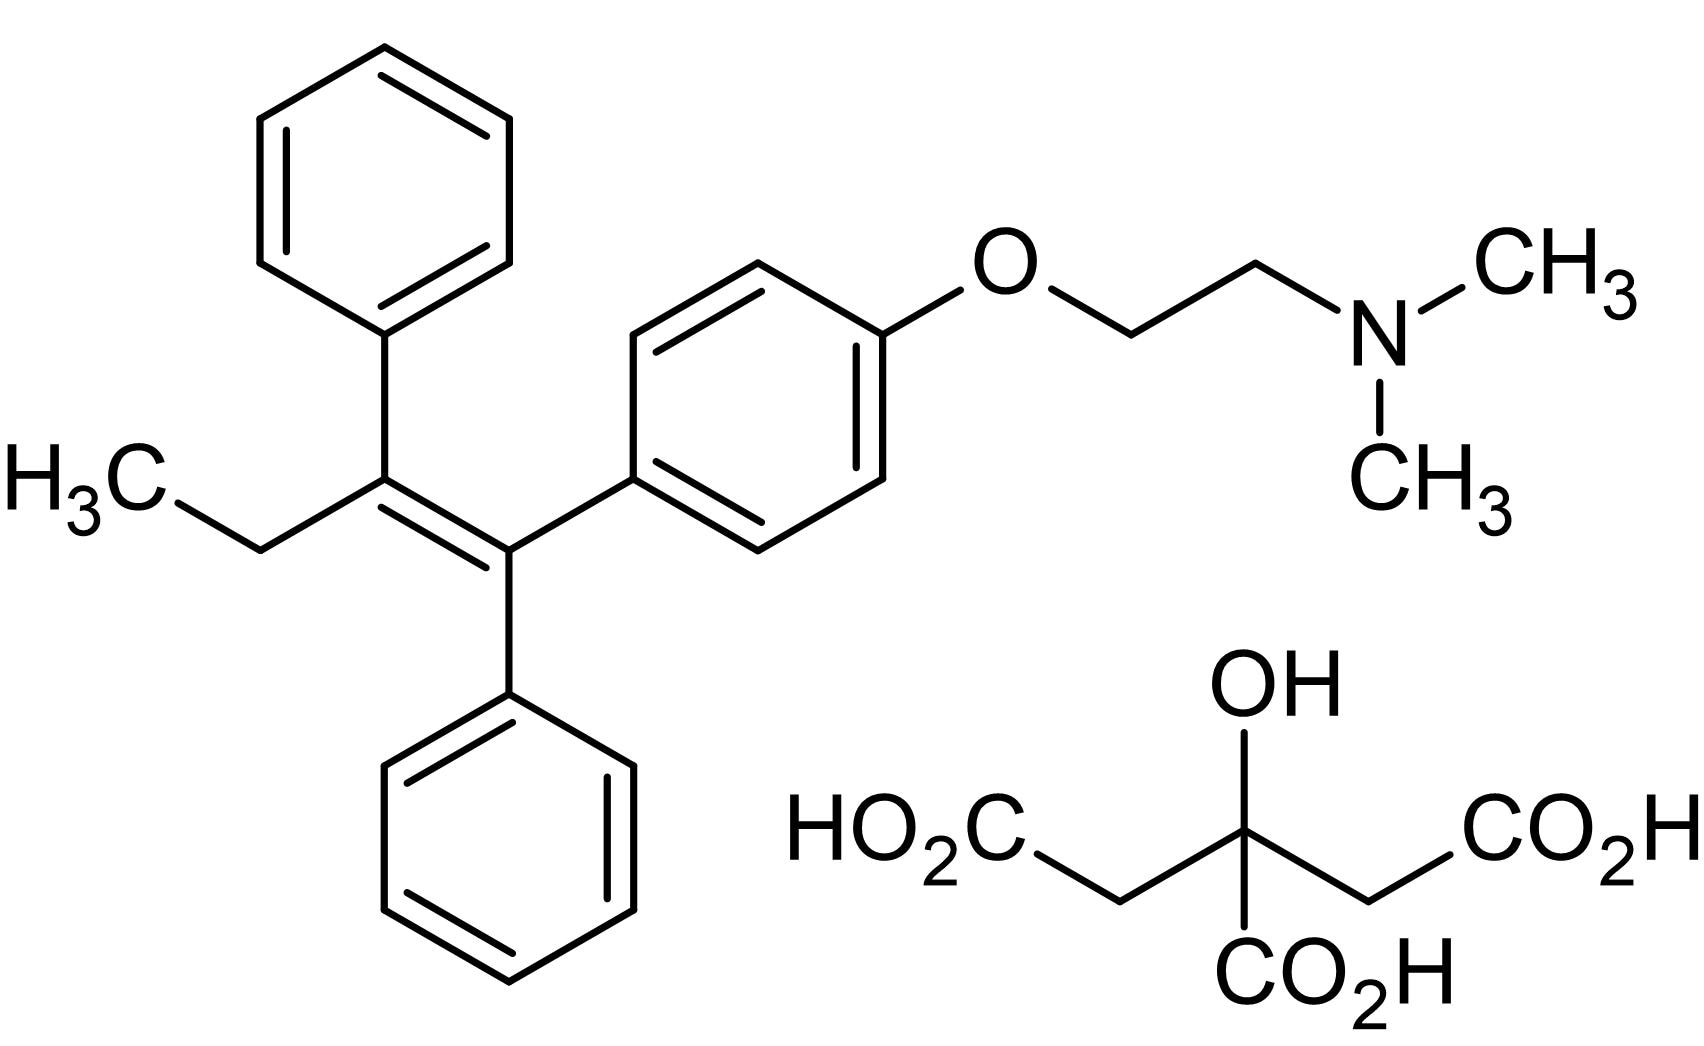 Chemical Structure - Tamoxifen citrate, Estrogen receptor antagonist and partial agonist (ab120656)